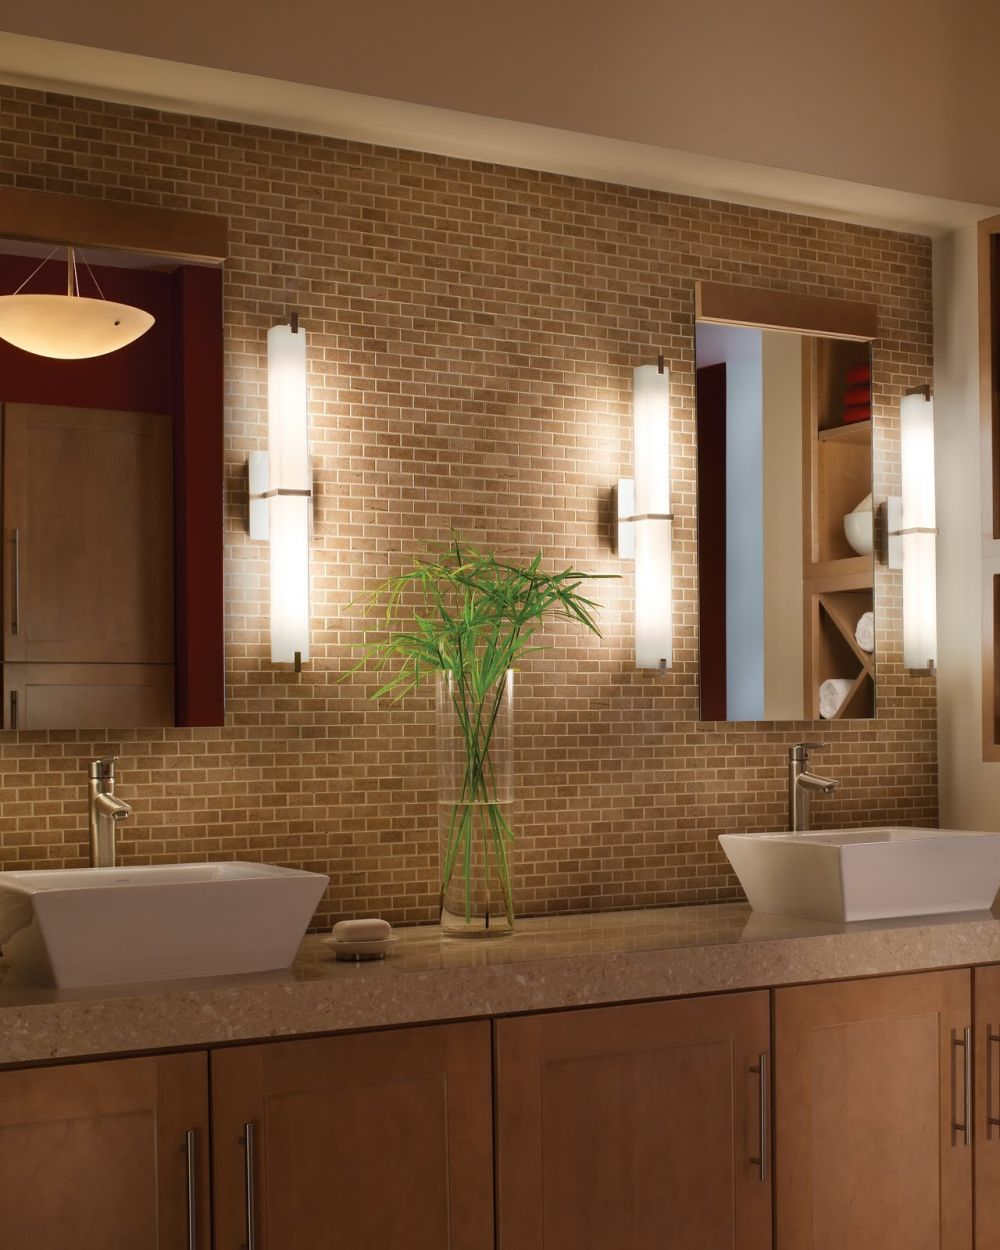 unique bathroom wall design with tube shaped in the brick wall and marble countertop with two sinks extraordinary and unique bathroom lighting